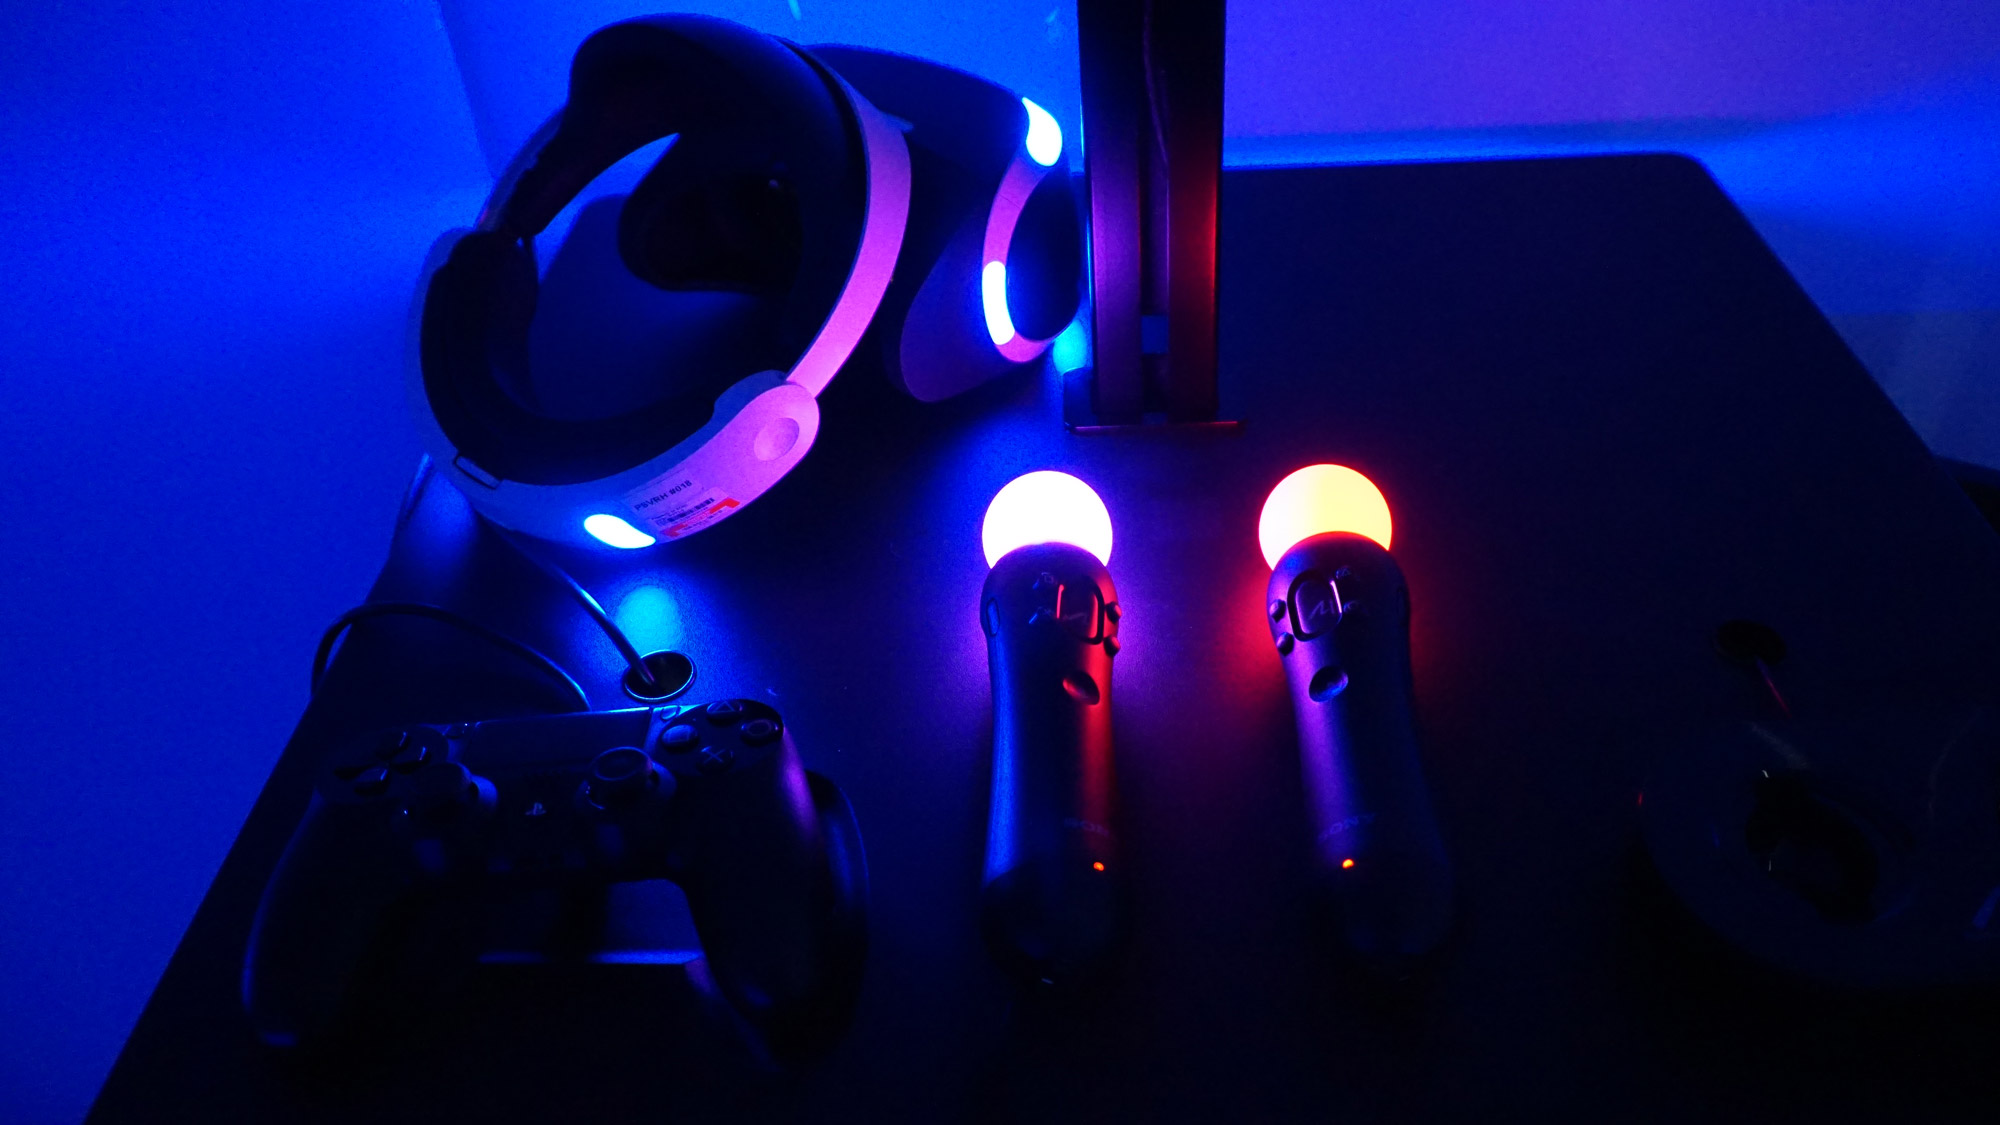 sony-ps-vr-2